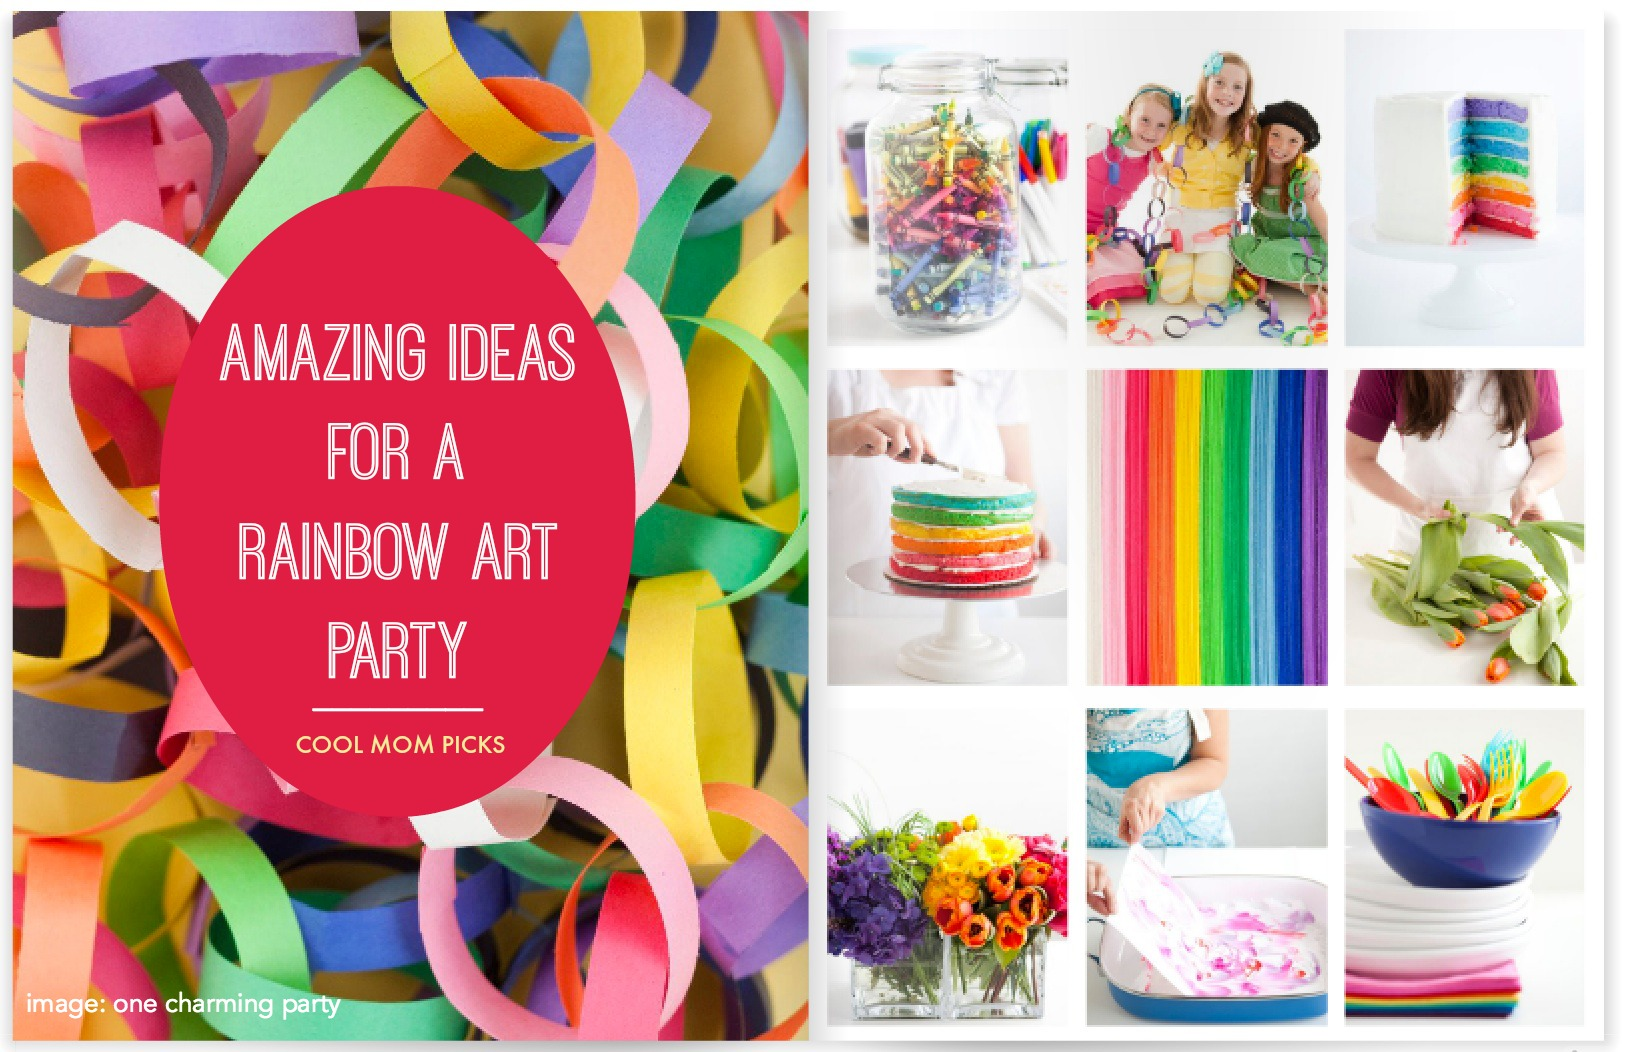 How to throw a rainbow art party: A rainbow party for kids with a creative twist